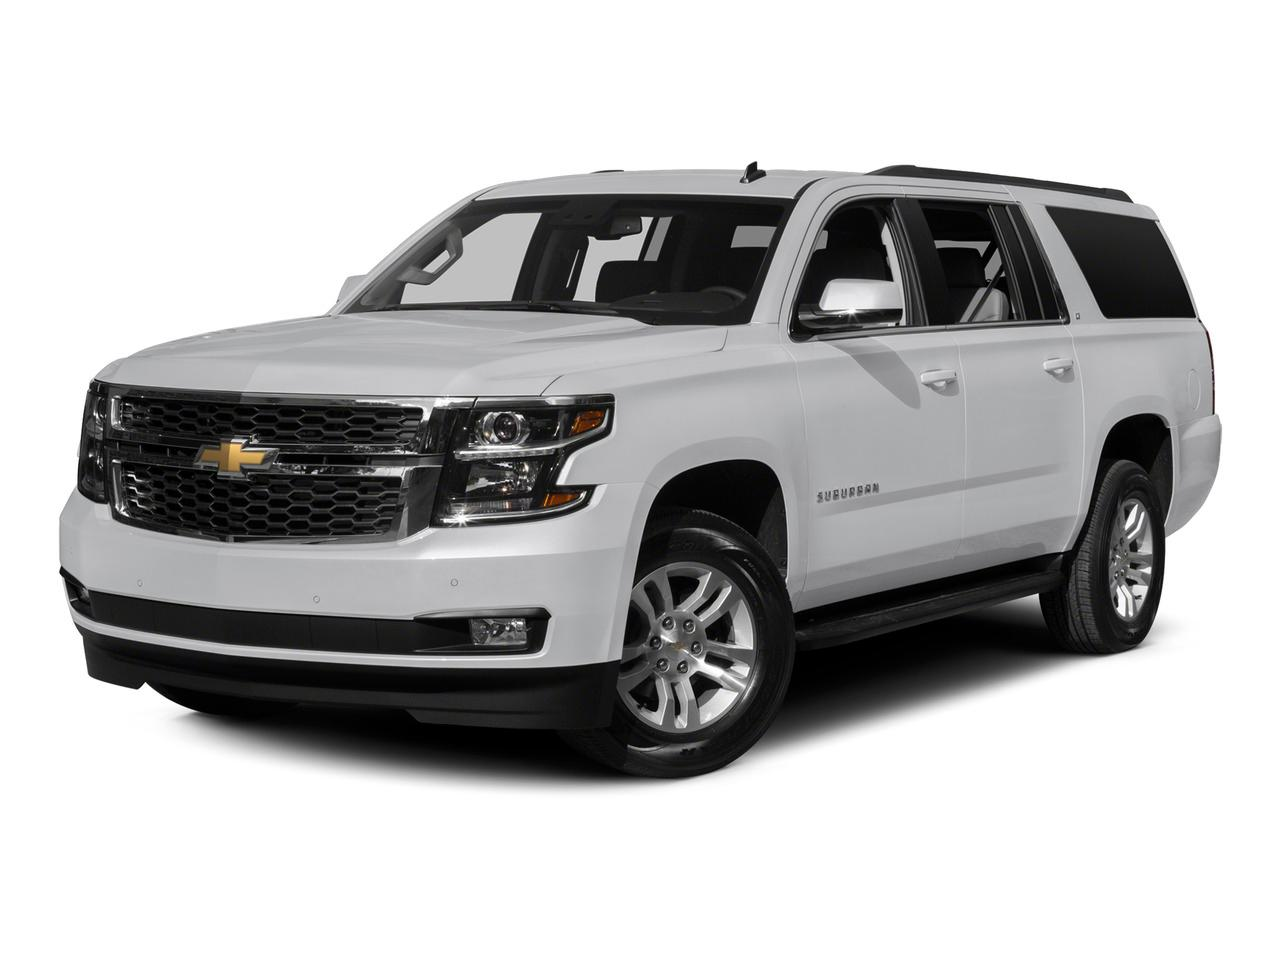 2015 Chevrolet Suburban Vehicle Photo in Lewisville,, TX 75067